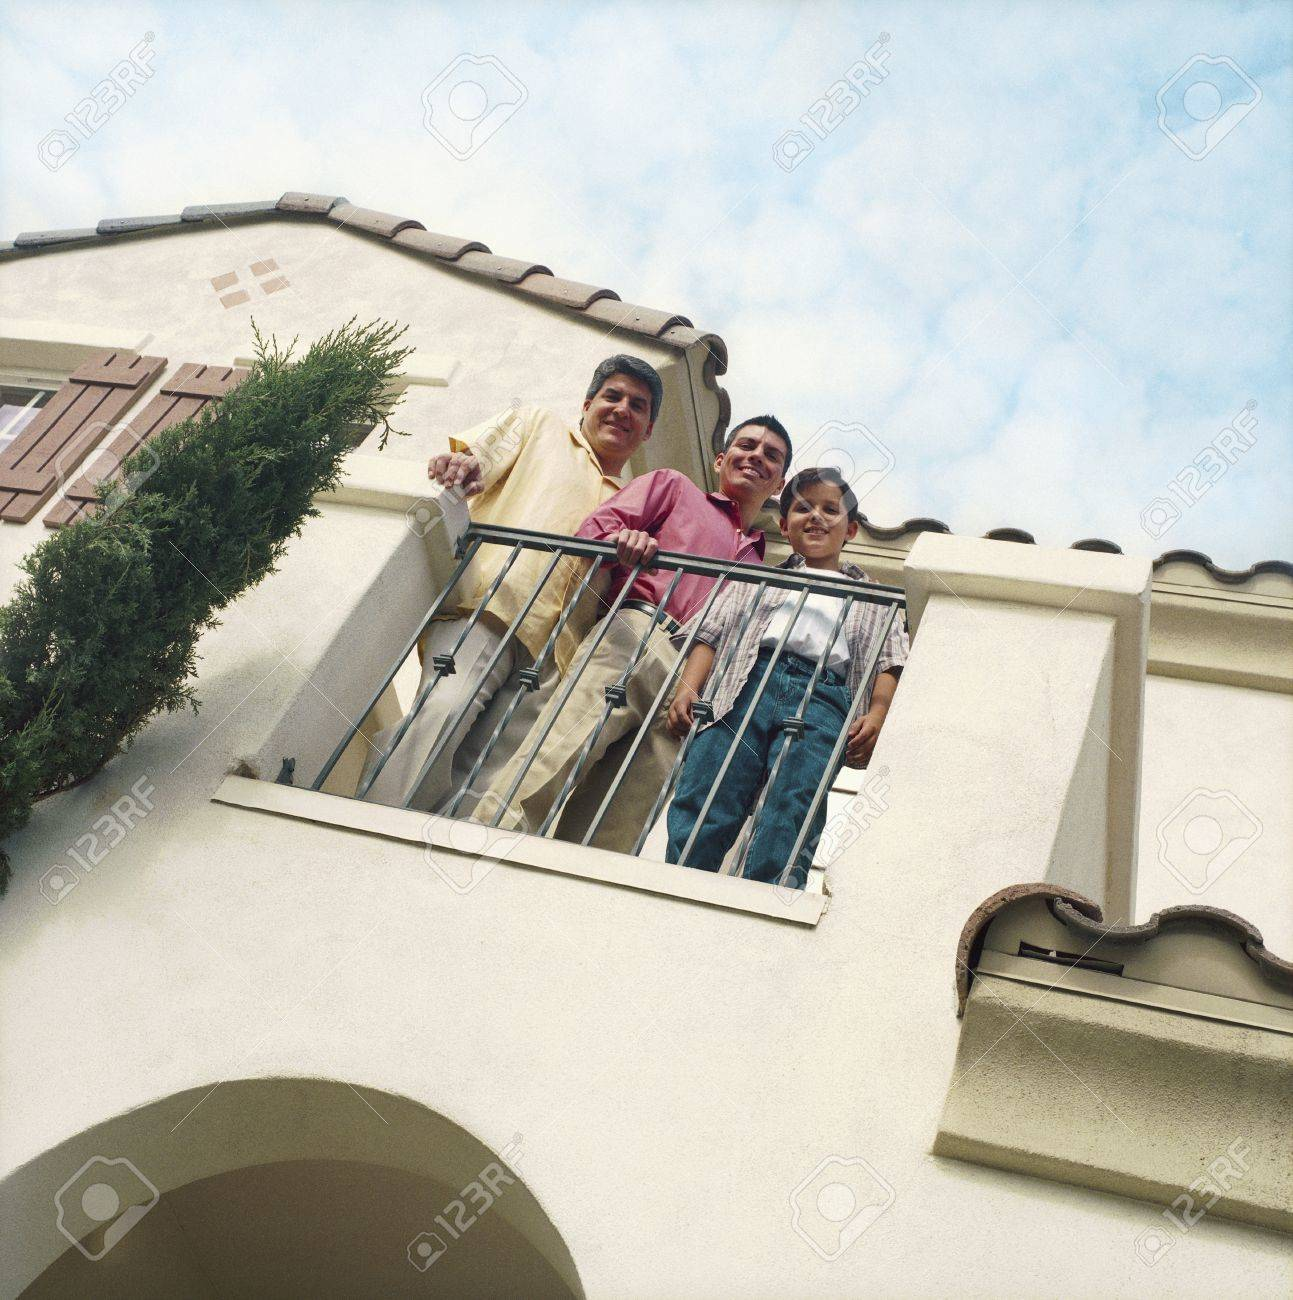 Three males standing on home balcony Stock Photo - 16071702